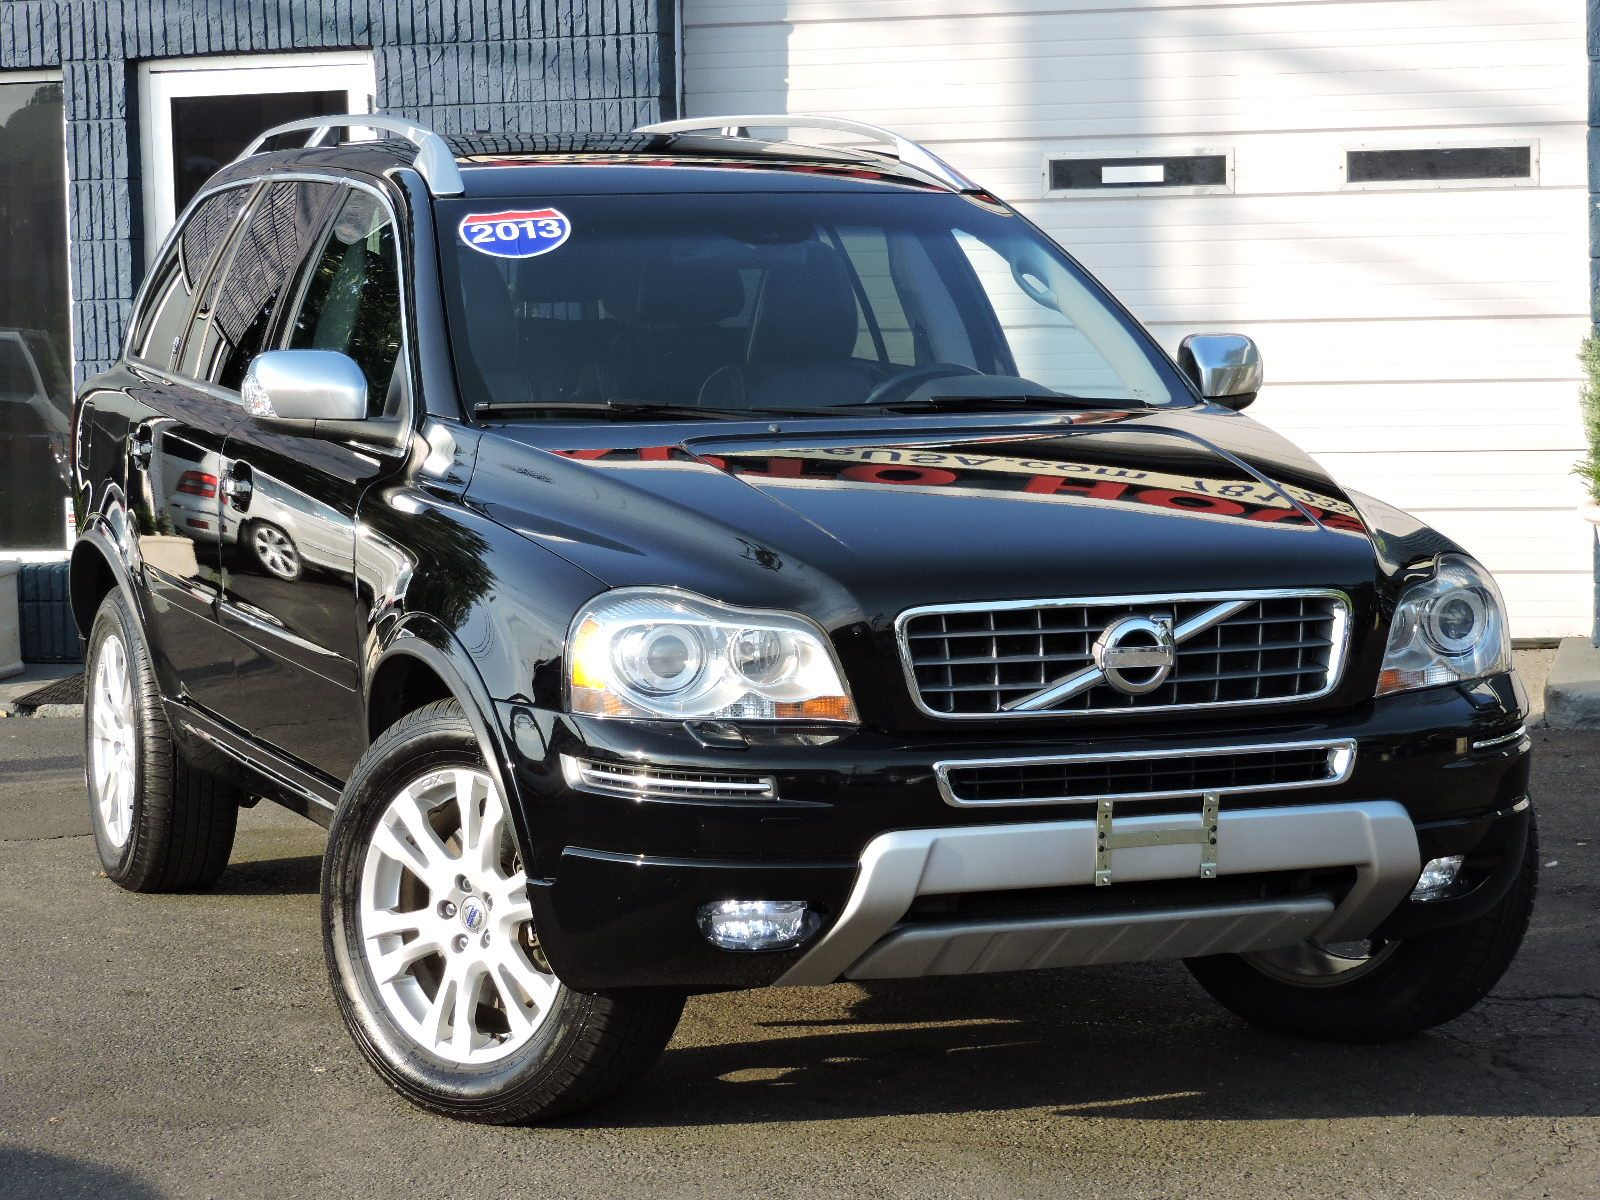 used 2013 volvo xc90 premier plus 3 2 premier plus at saugus auto mall. Black Bedroom Furniture Sets. Home Design Ideas